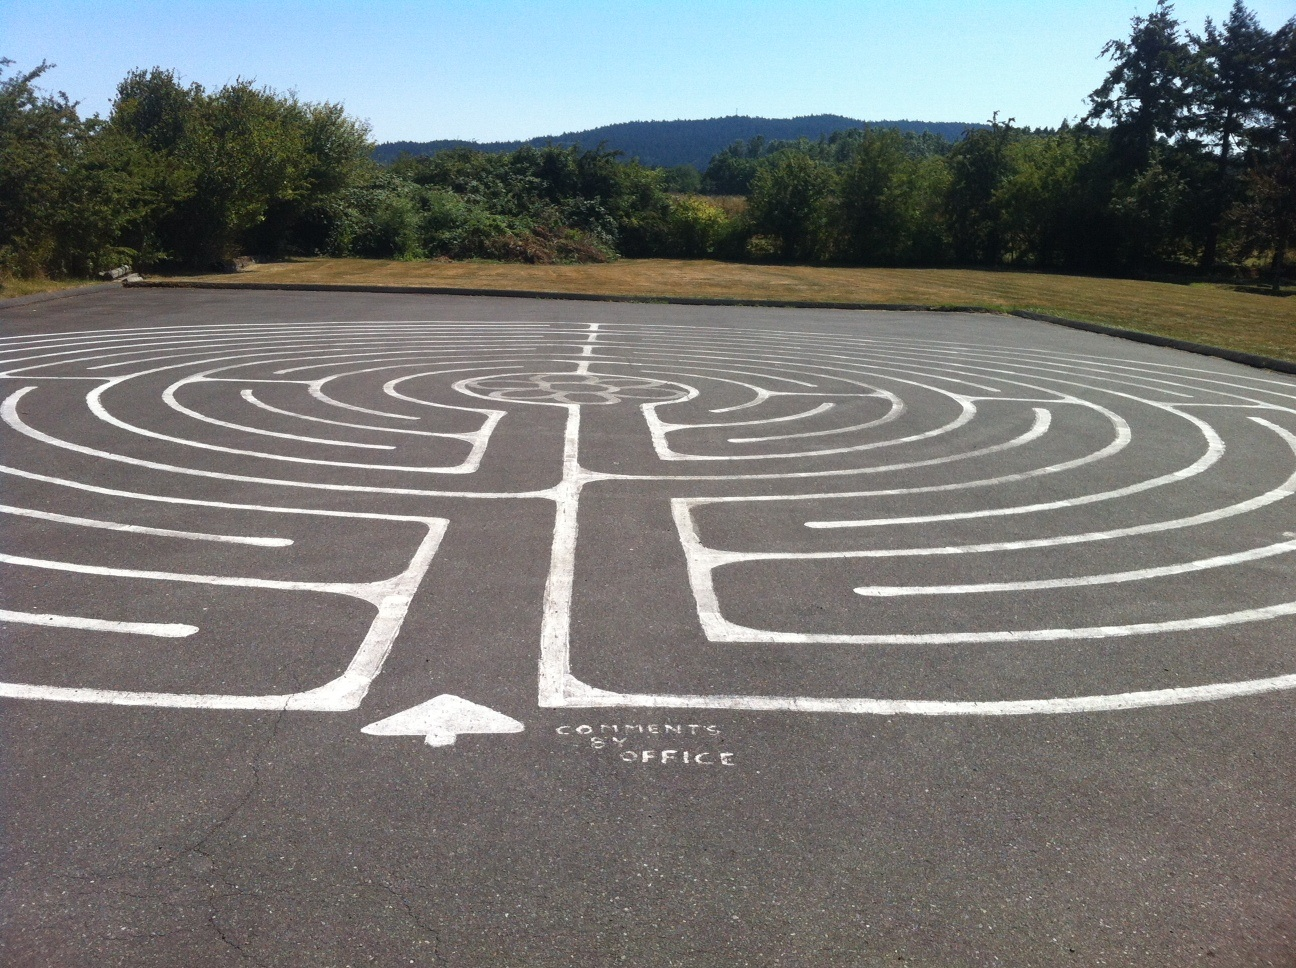 Labyrinth in the parking lot of Holy Trinity Anglican Church in North Saanich, BC.